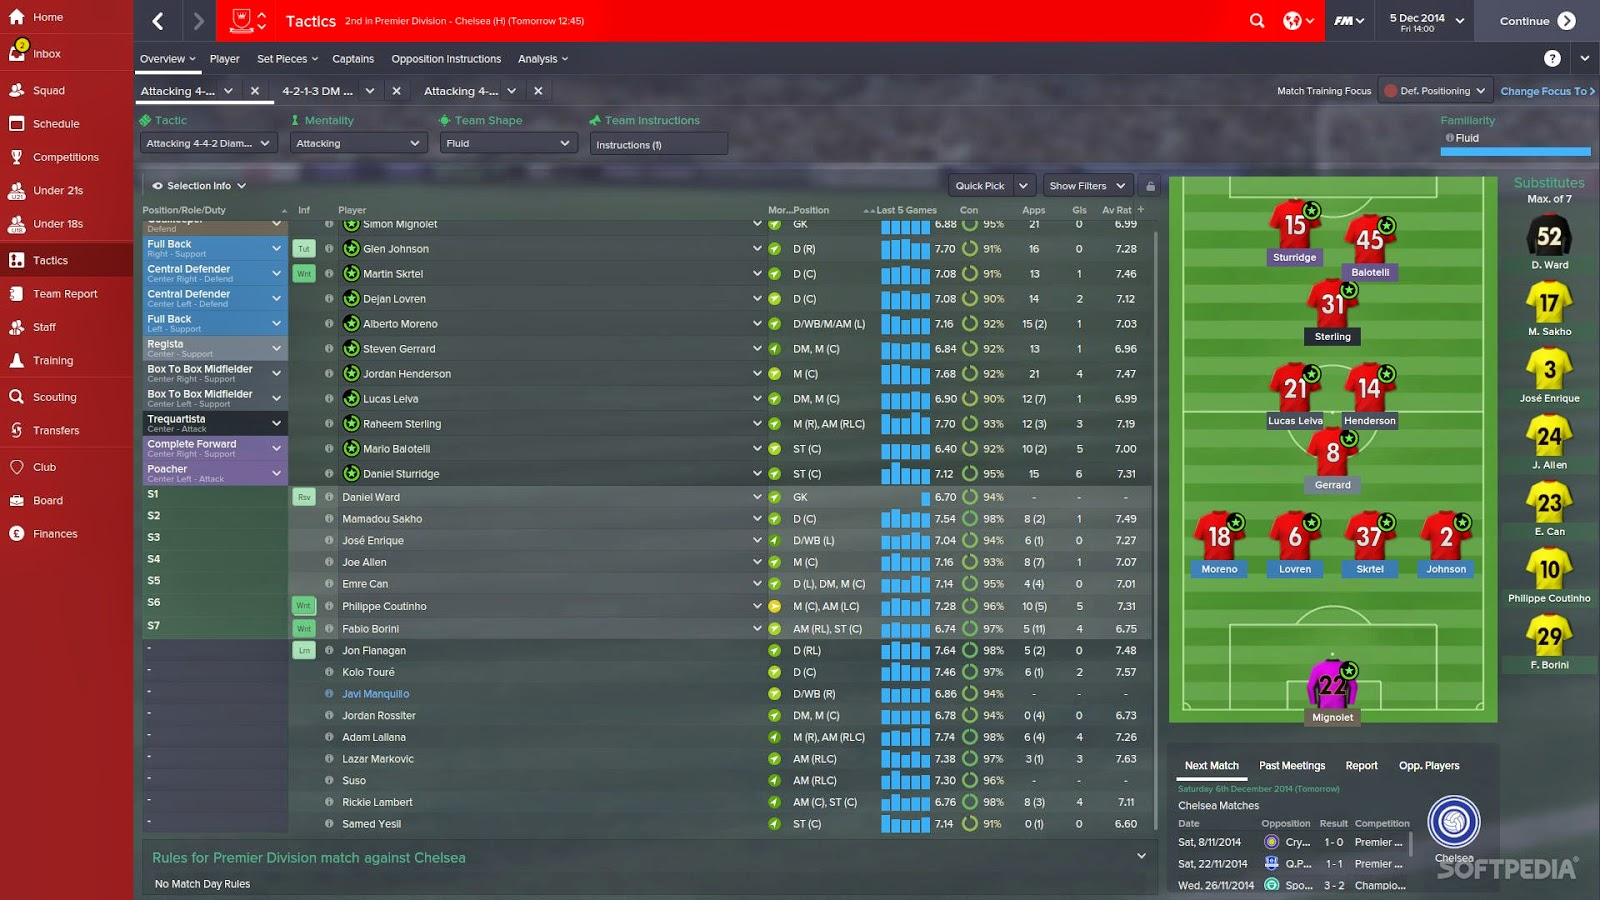 Football manager 2015 beta cracked